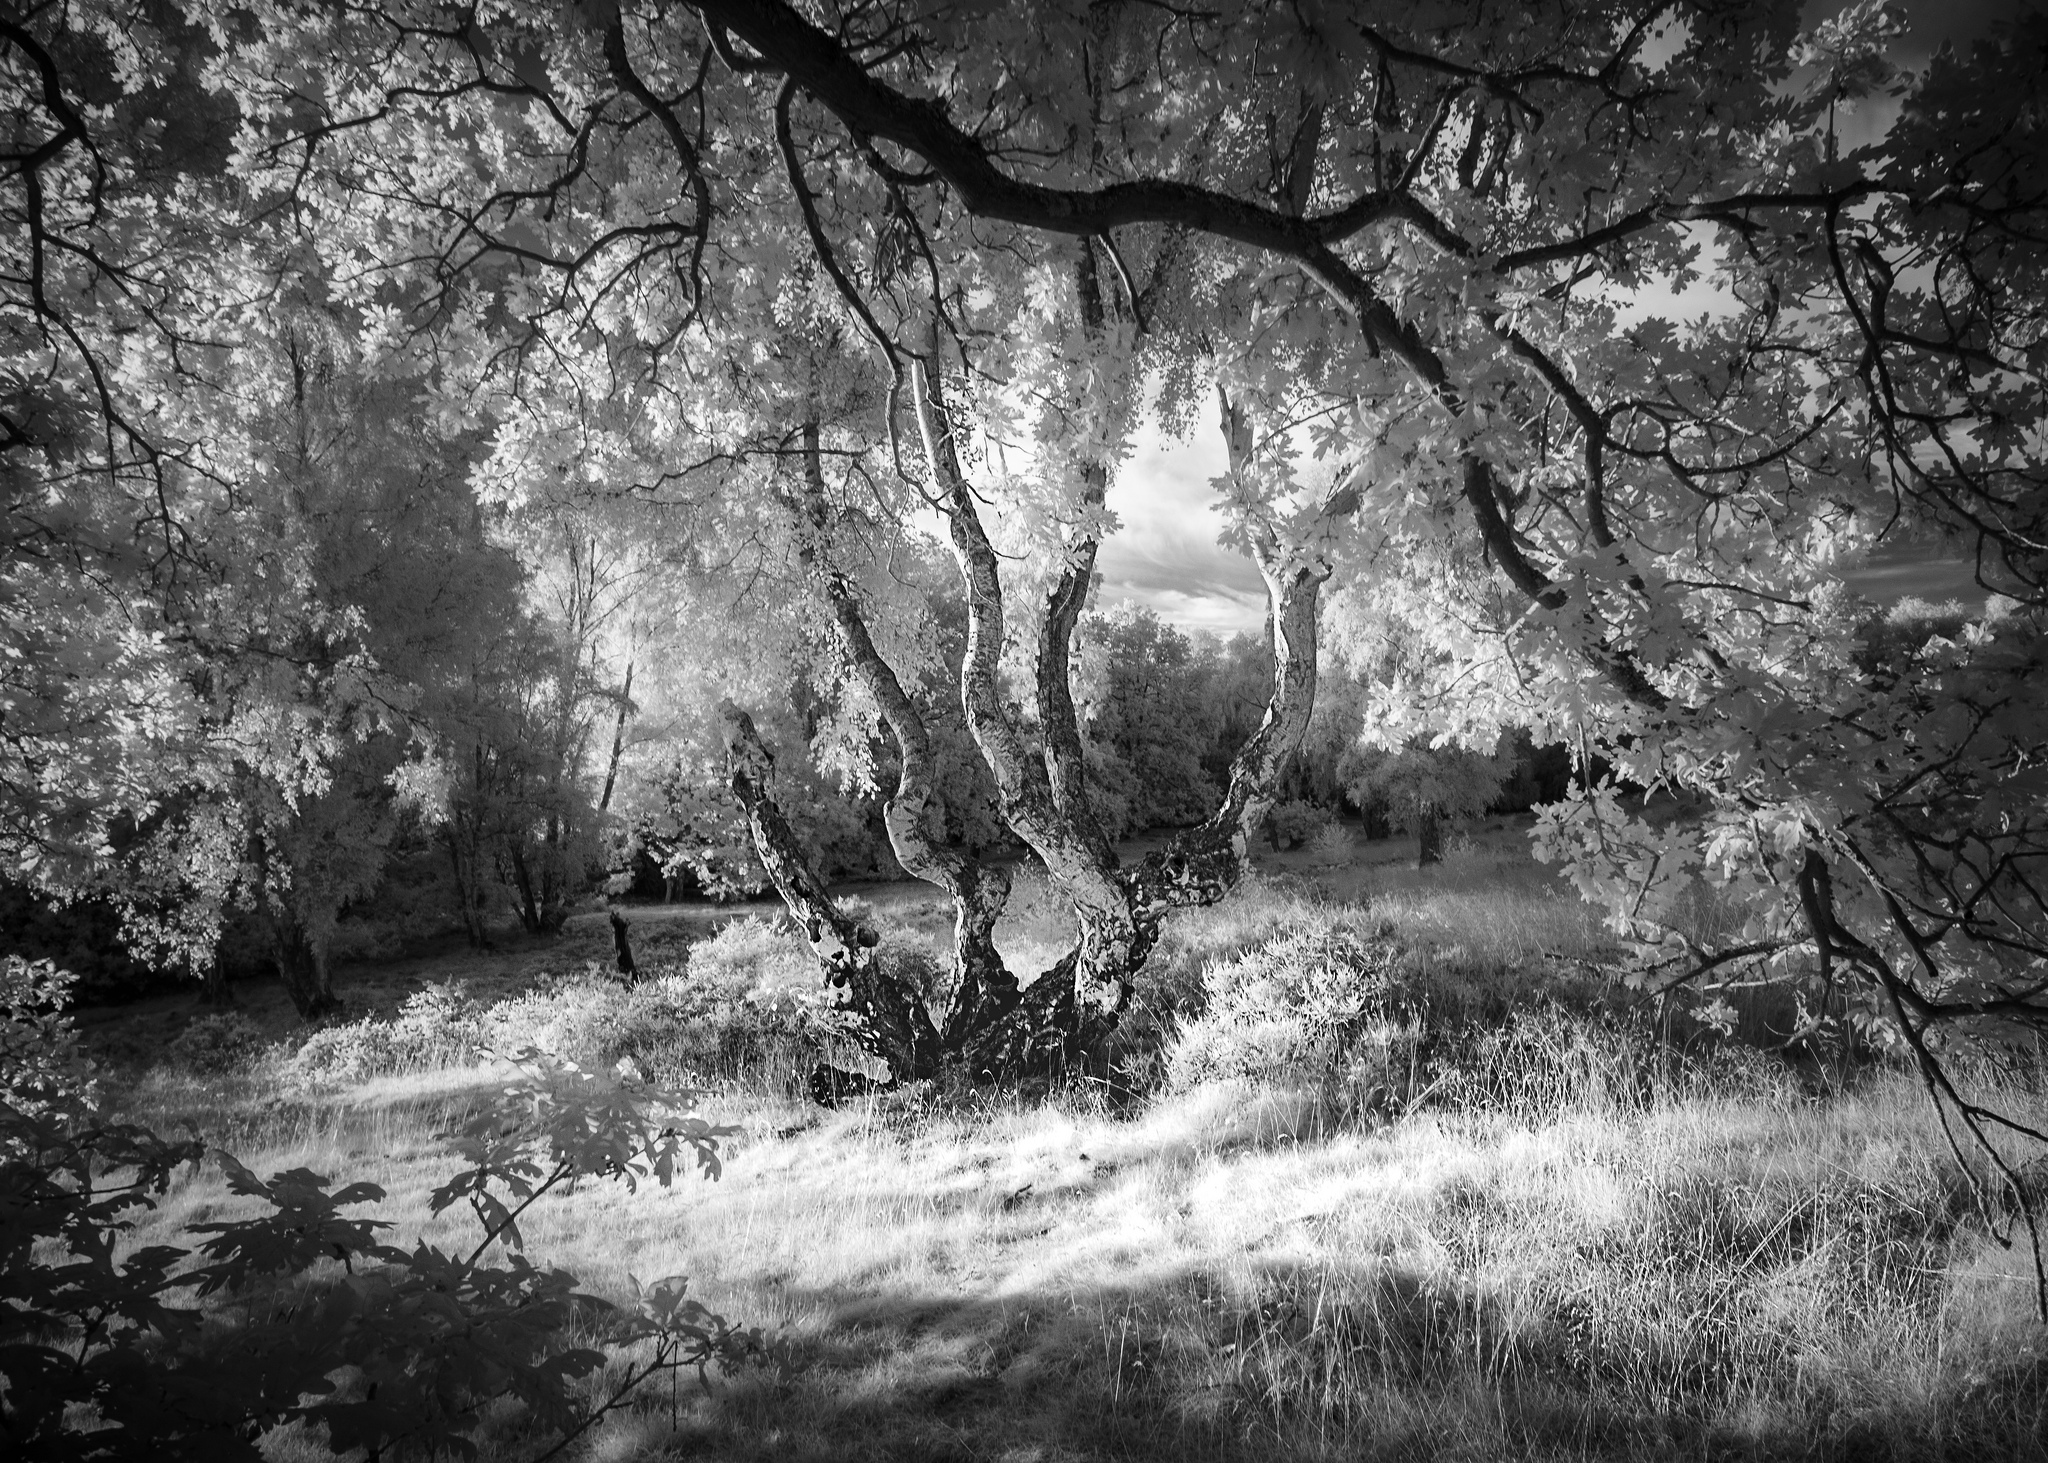 Silver Birches on Ampthill Heath. One of the images on display at The Pavilion.